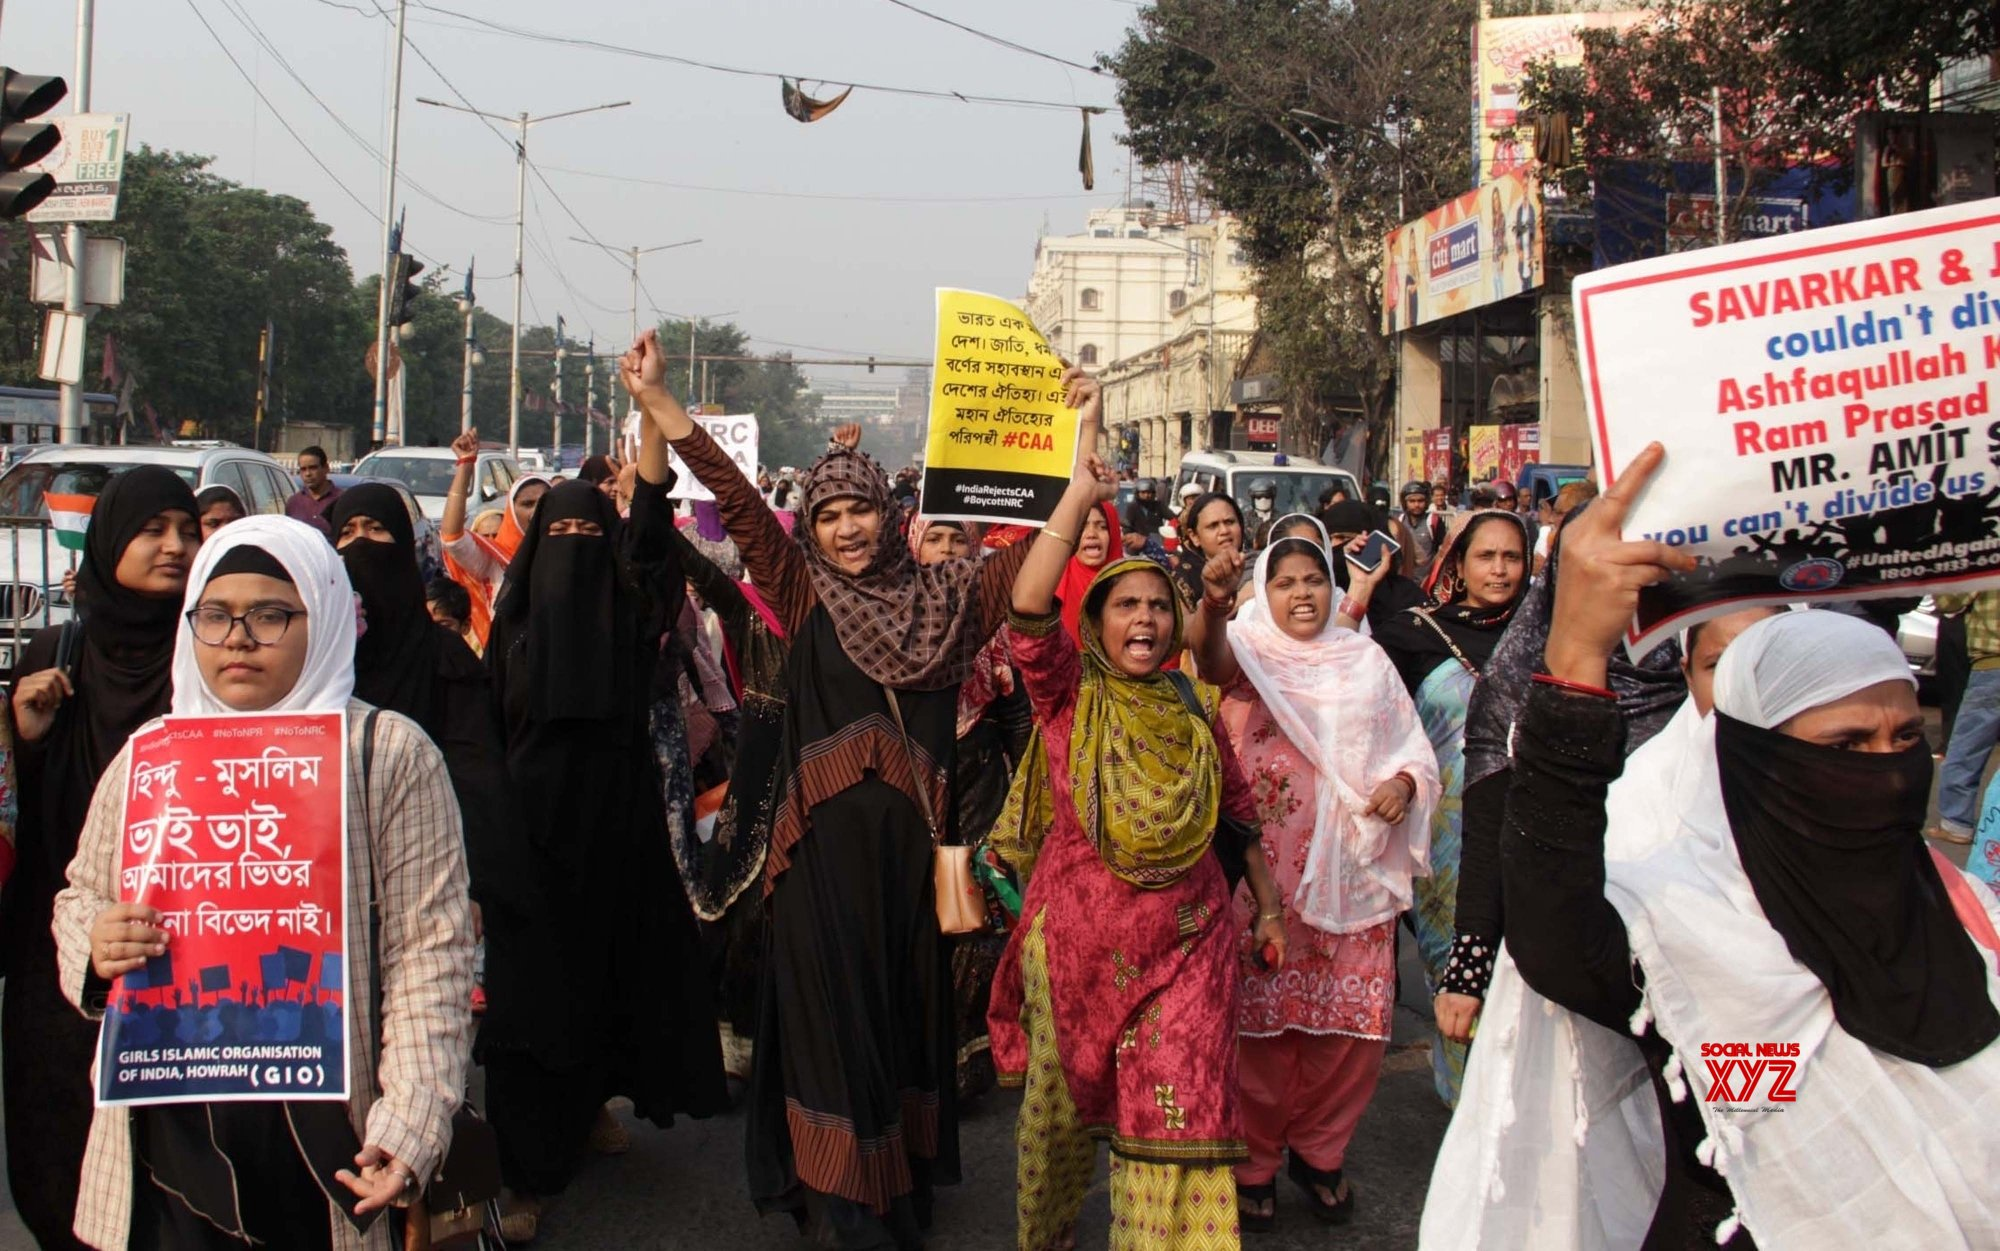 Kolkata: Women protest against CAA - NRC - NPR #Gallery